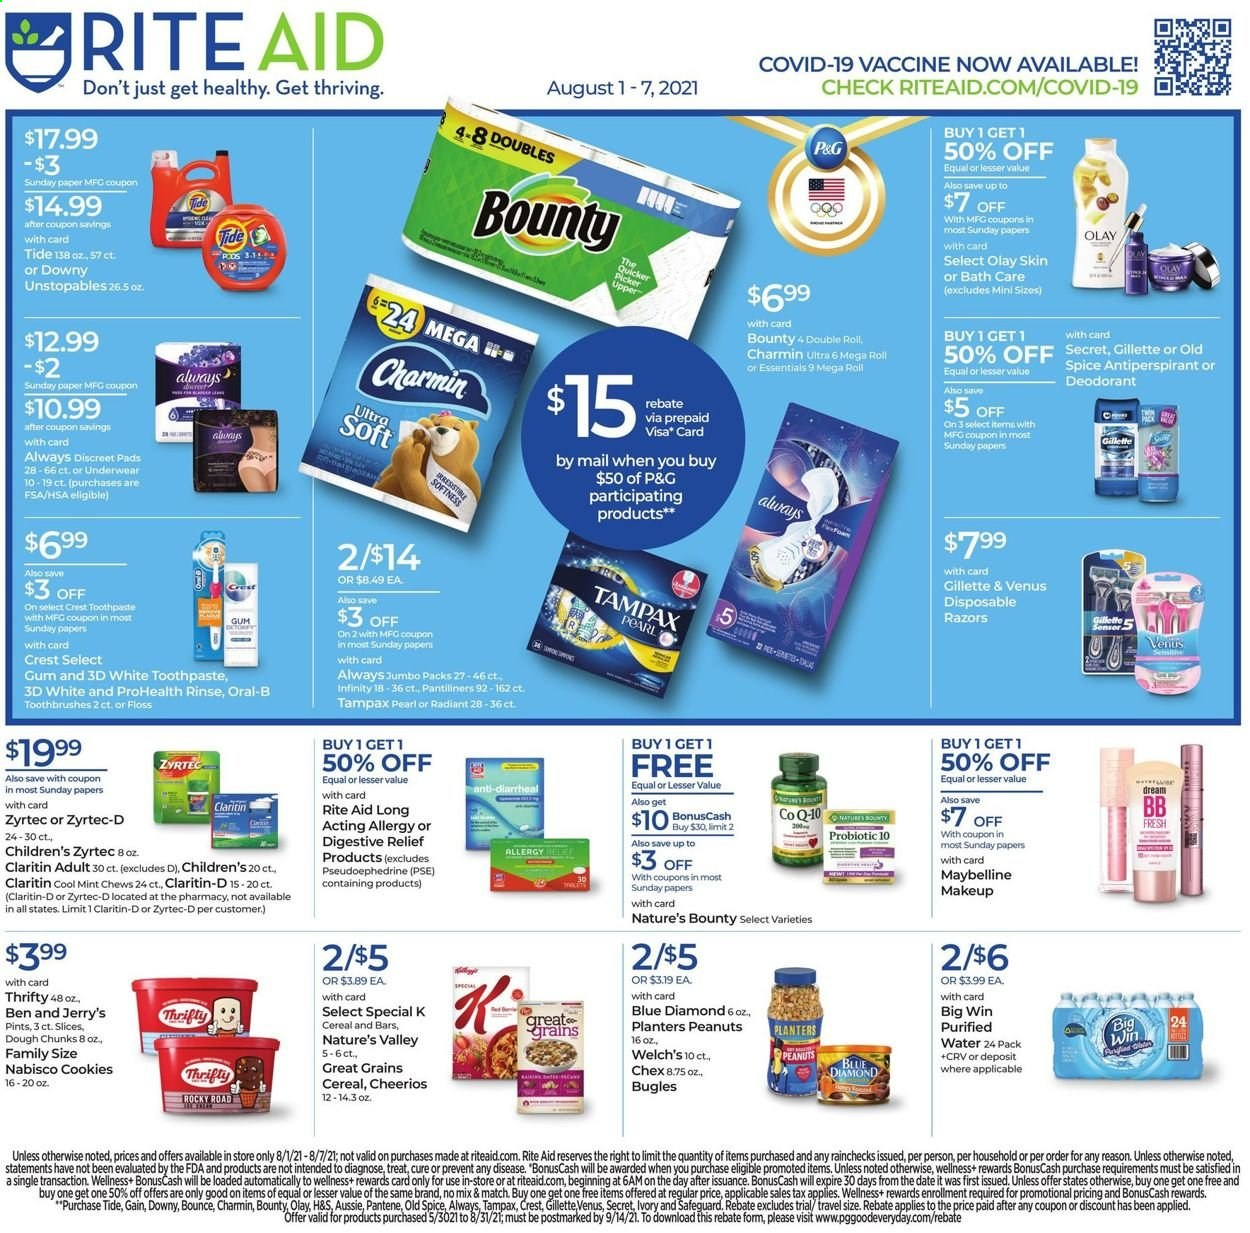 Rite Aid Ad from august 1 to 7 2021 - Page 1